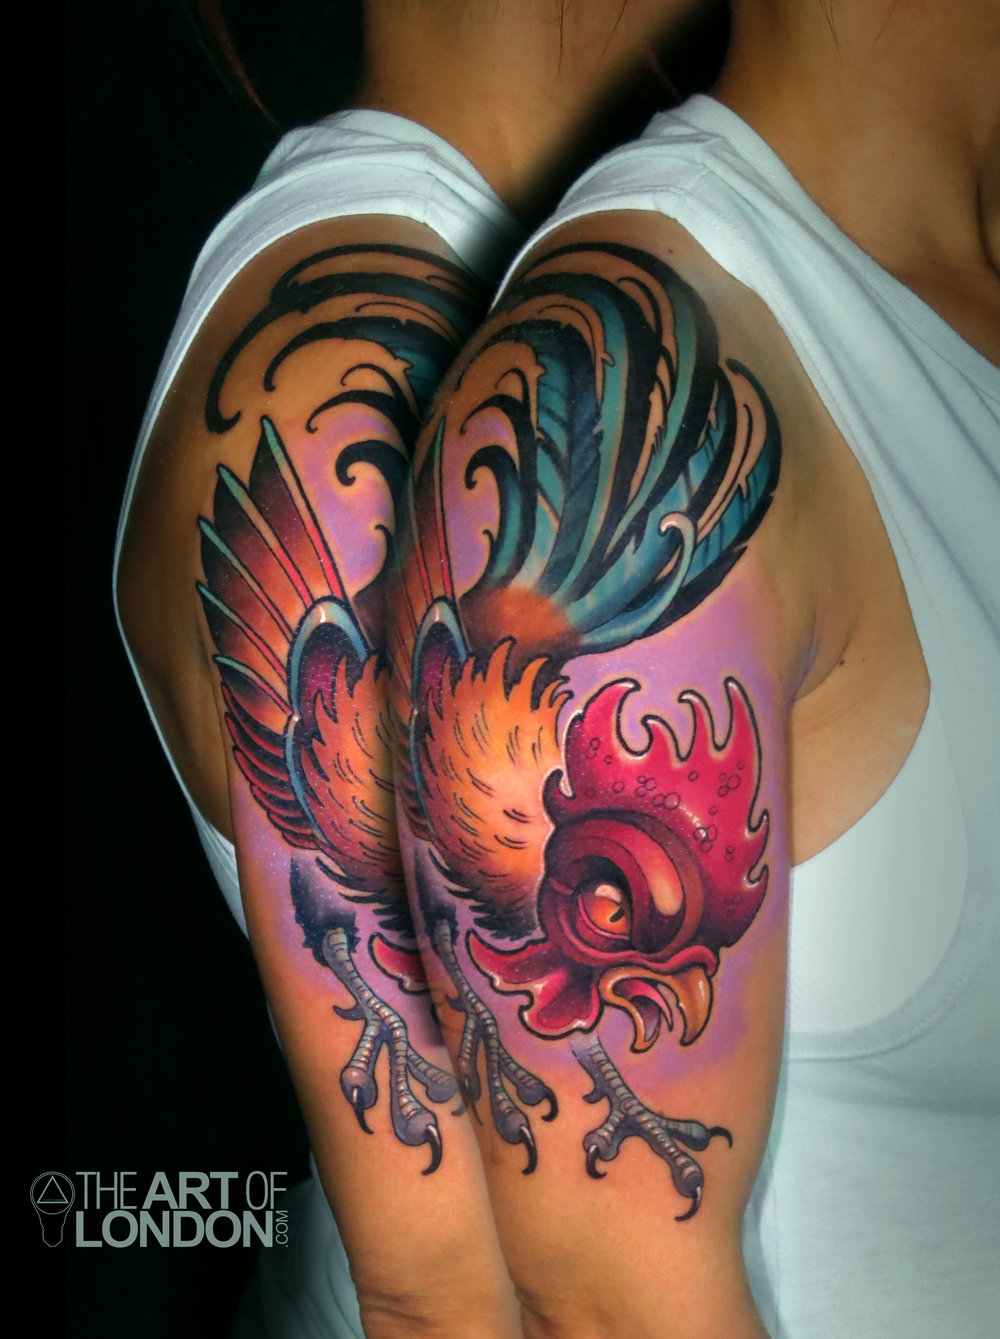 rooster new school illustrative tattoo.jpg